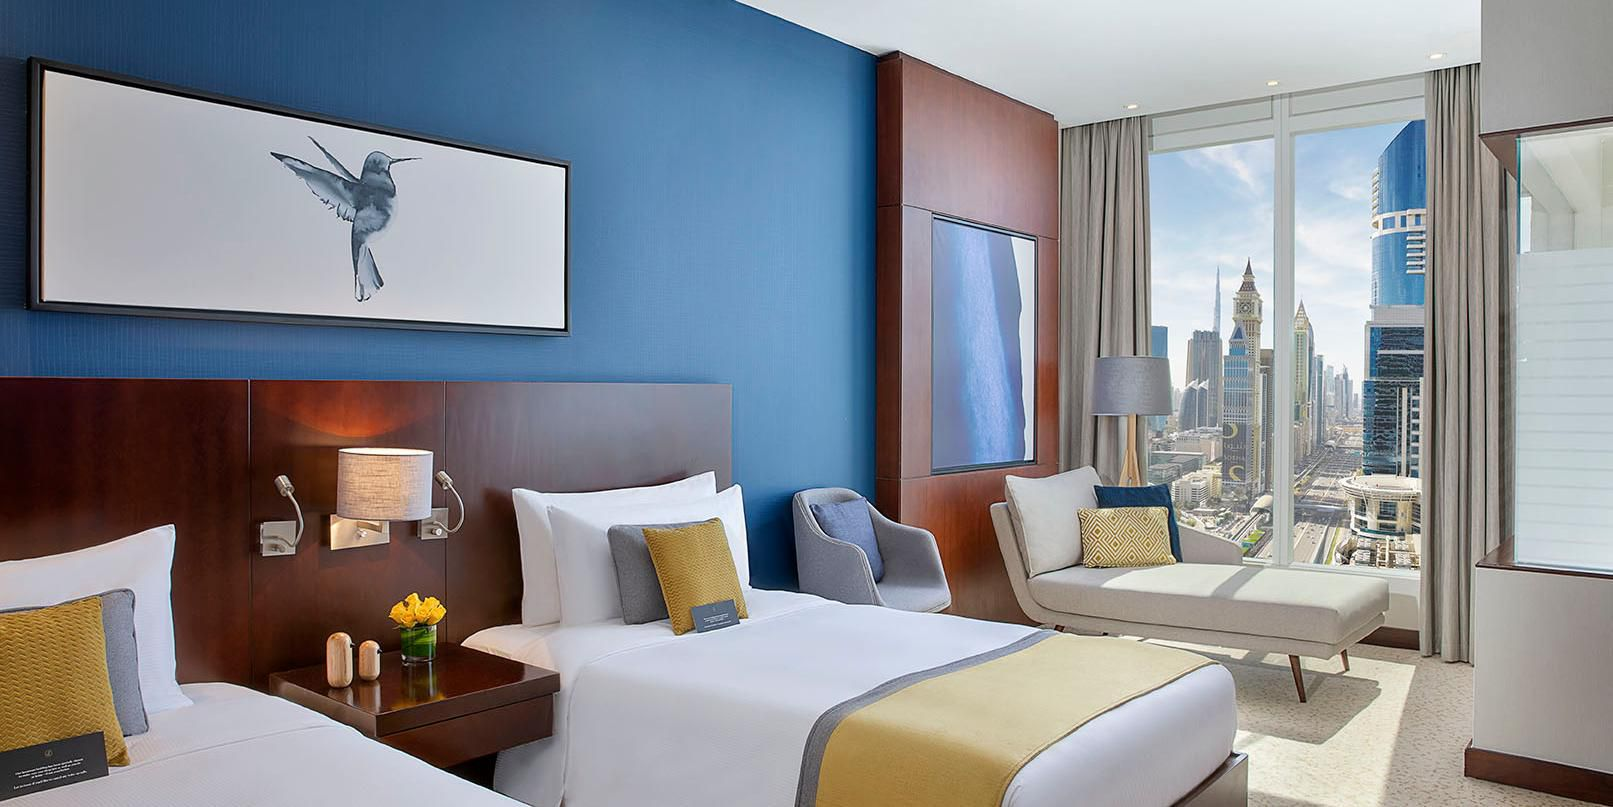 Superior Room, twin beds, city views of Sheikh Zayed Road, Dubai